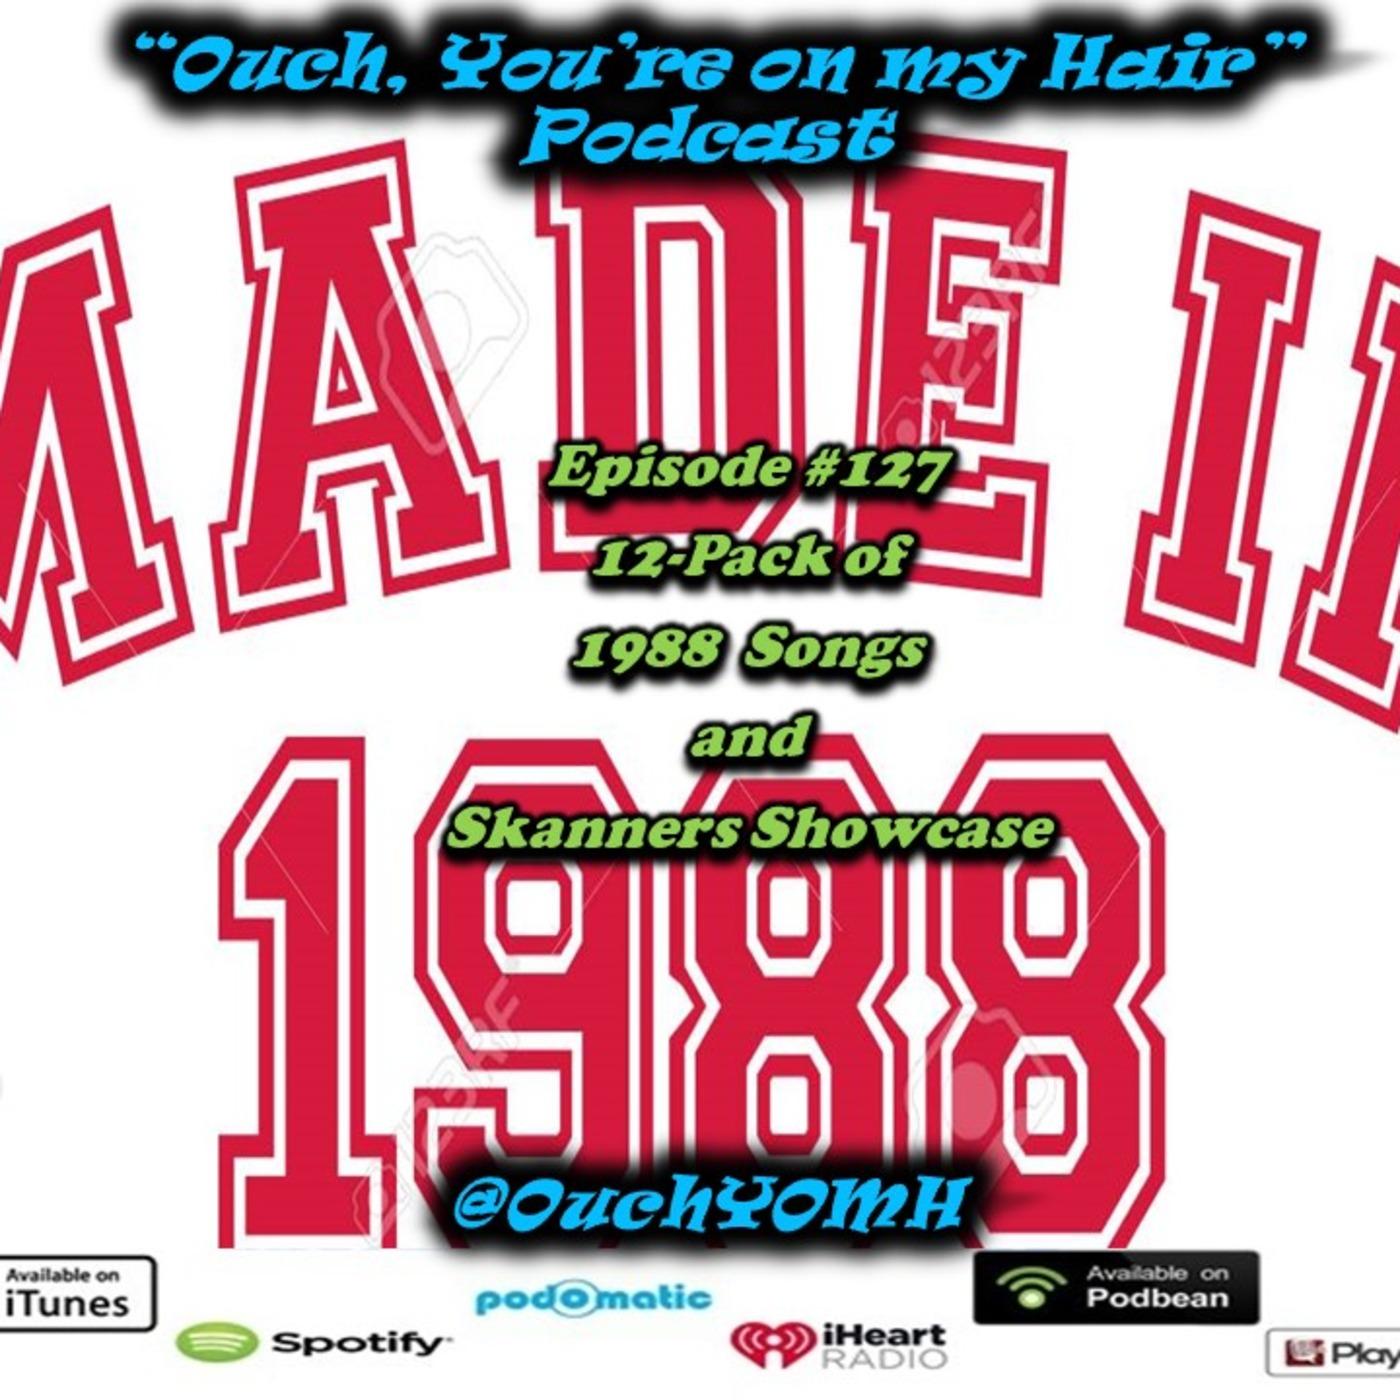 Ep #127 12-Pack Of 1988 Songs And Skanners Showcase Ouch